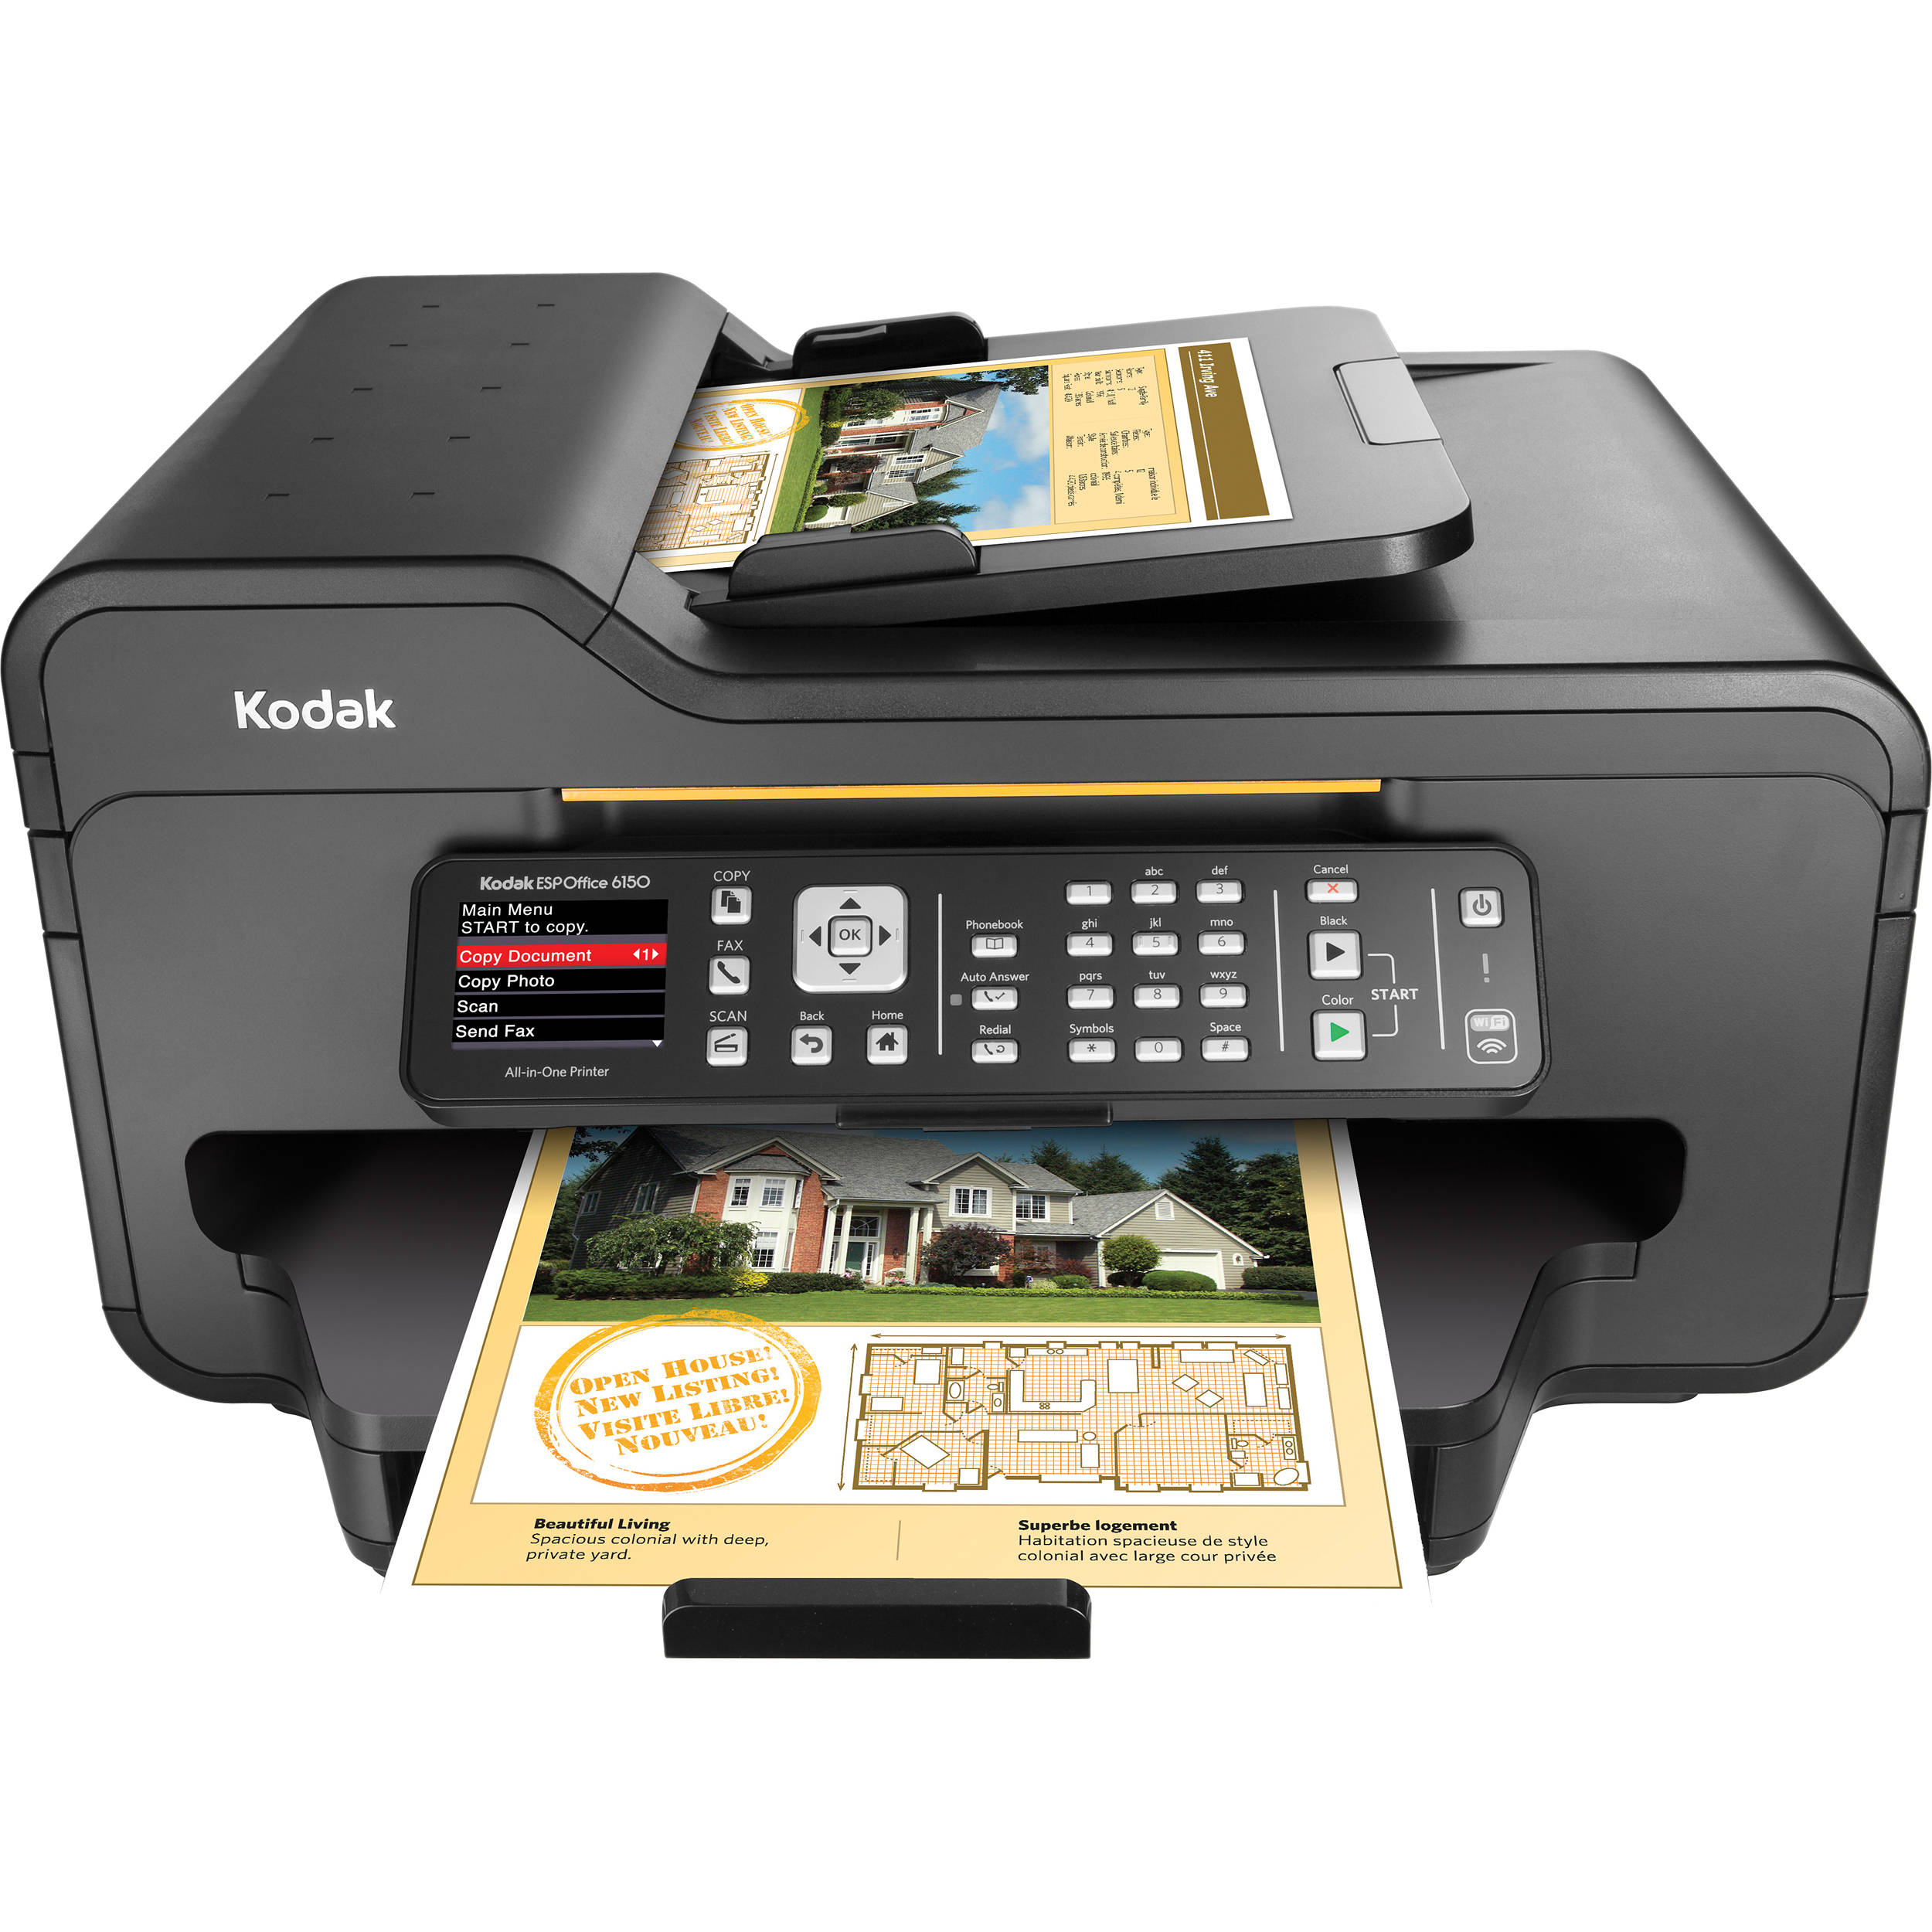 Kodak ESP Office 6150 All In One Printer